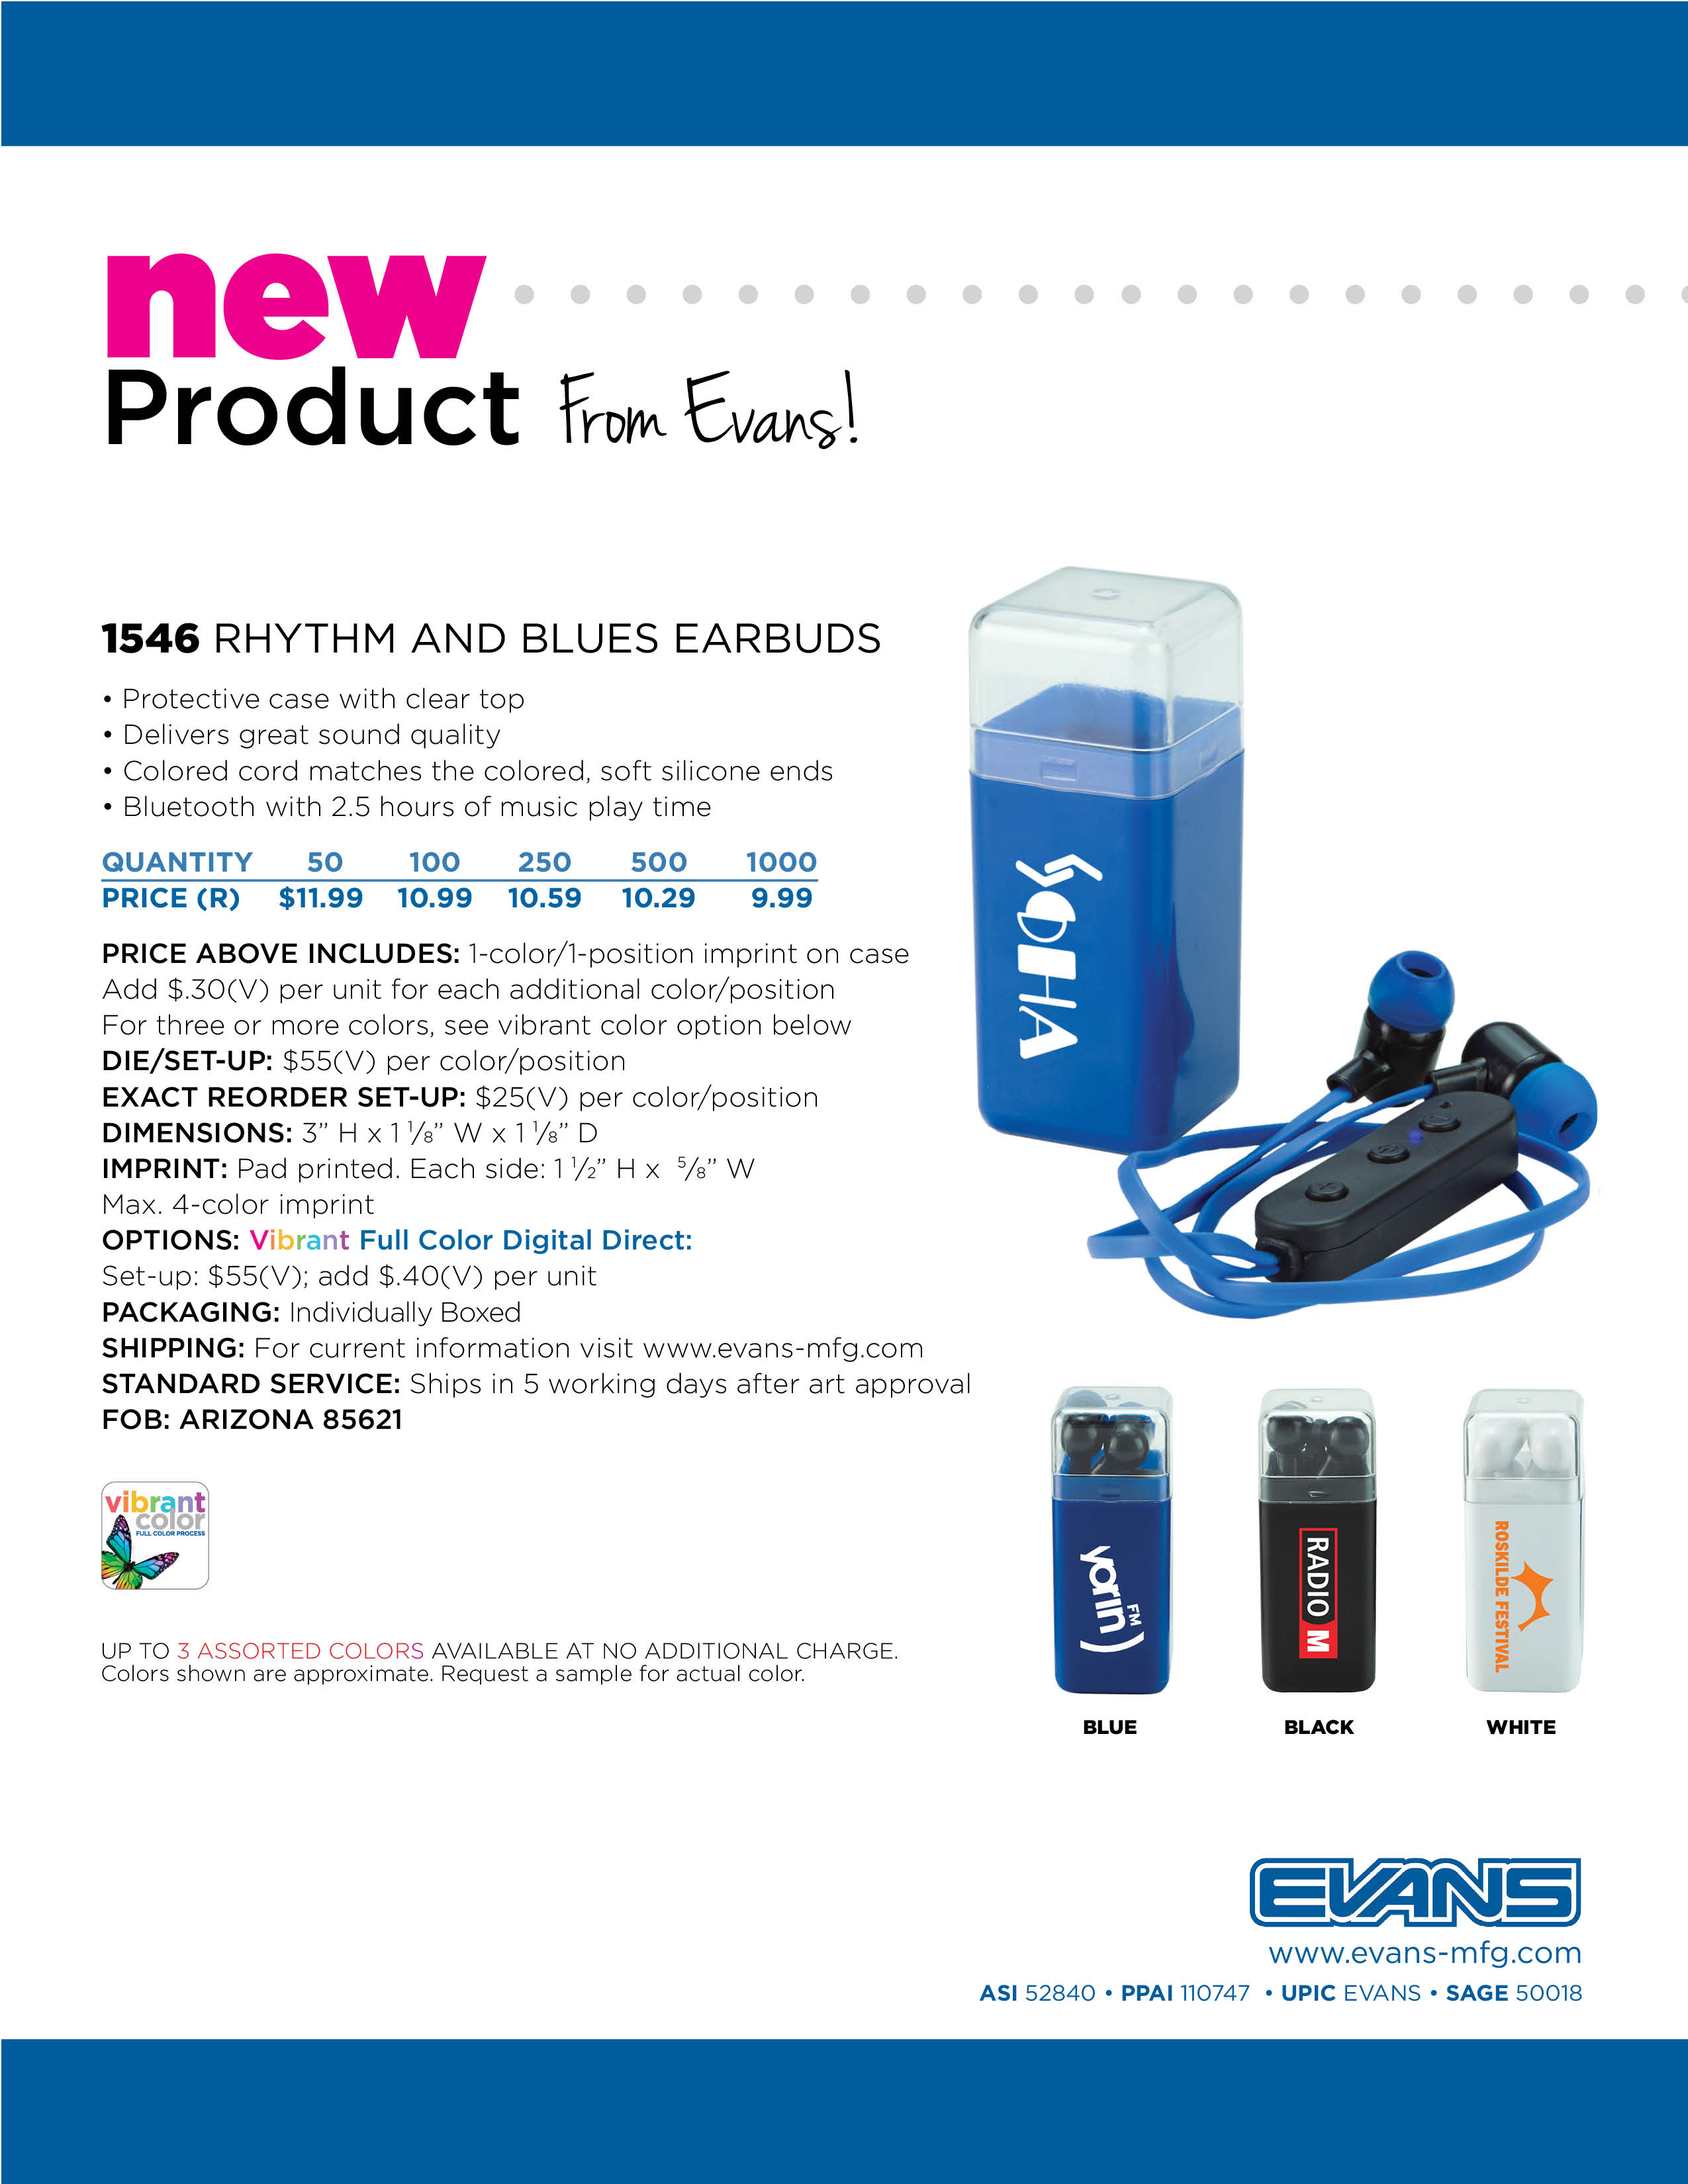 1546 Rhythm and Blues Earbuds